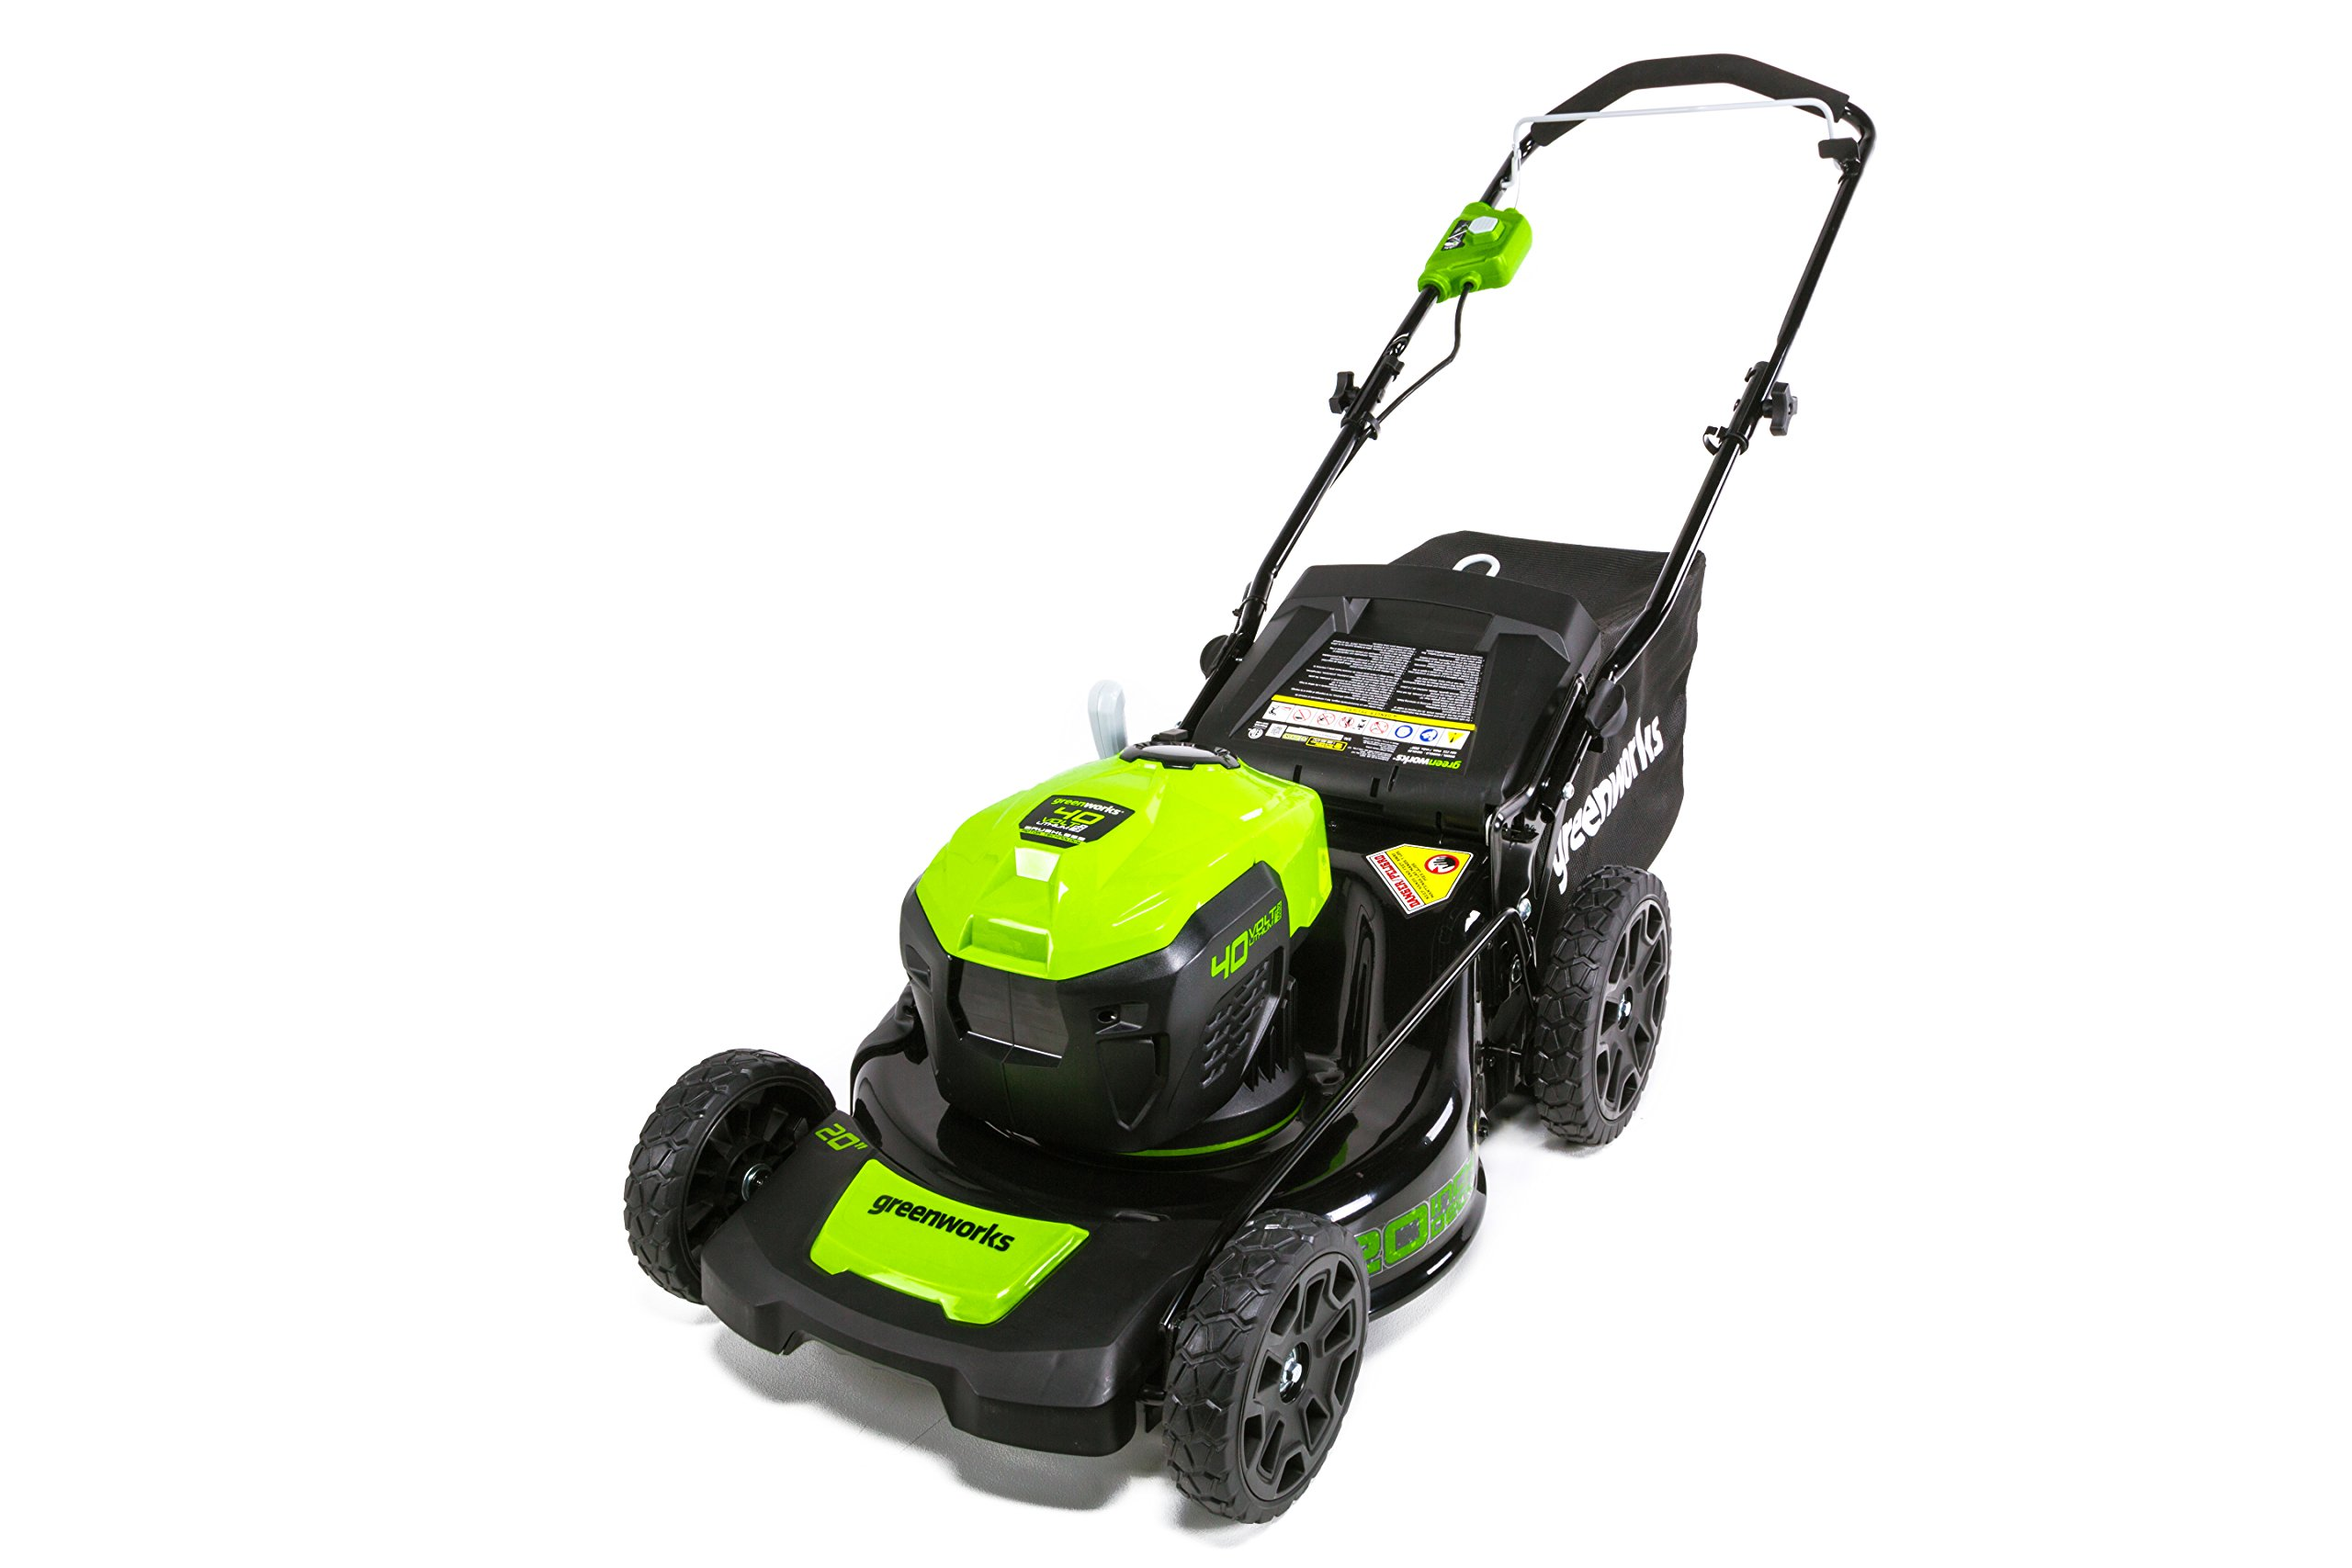 GreenWorks G-MAX 40V 20'' Brushless Dual Port Lawn Mower, Battery and Charger Not Included MO40L00